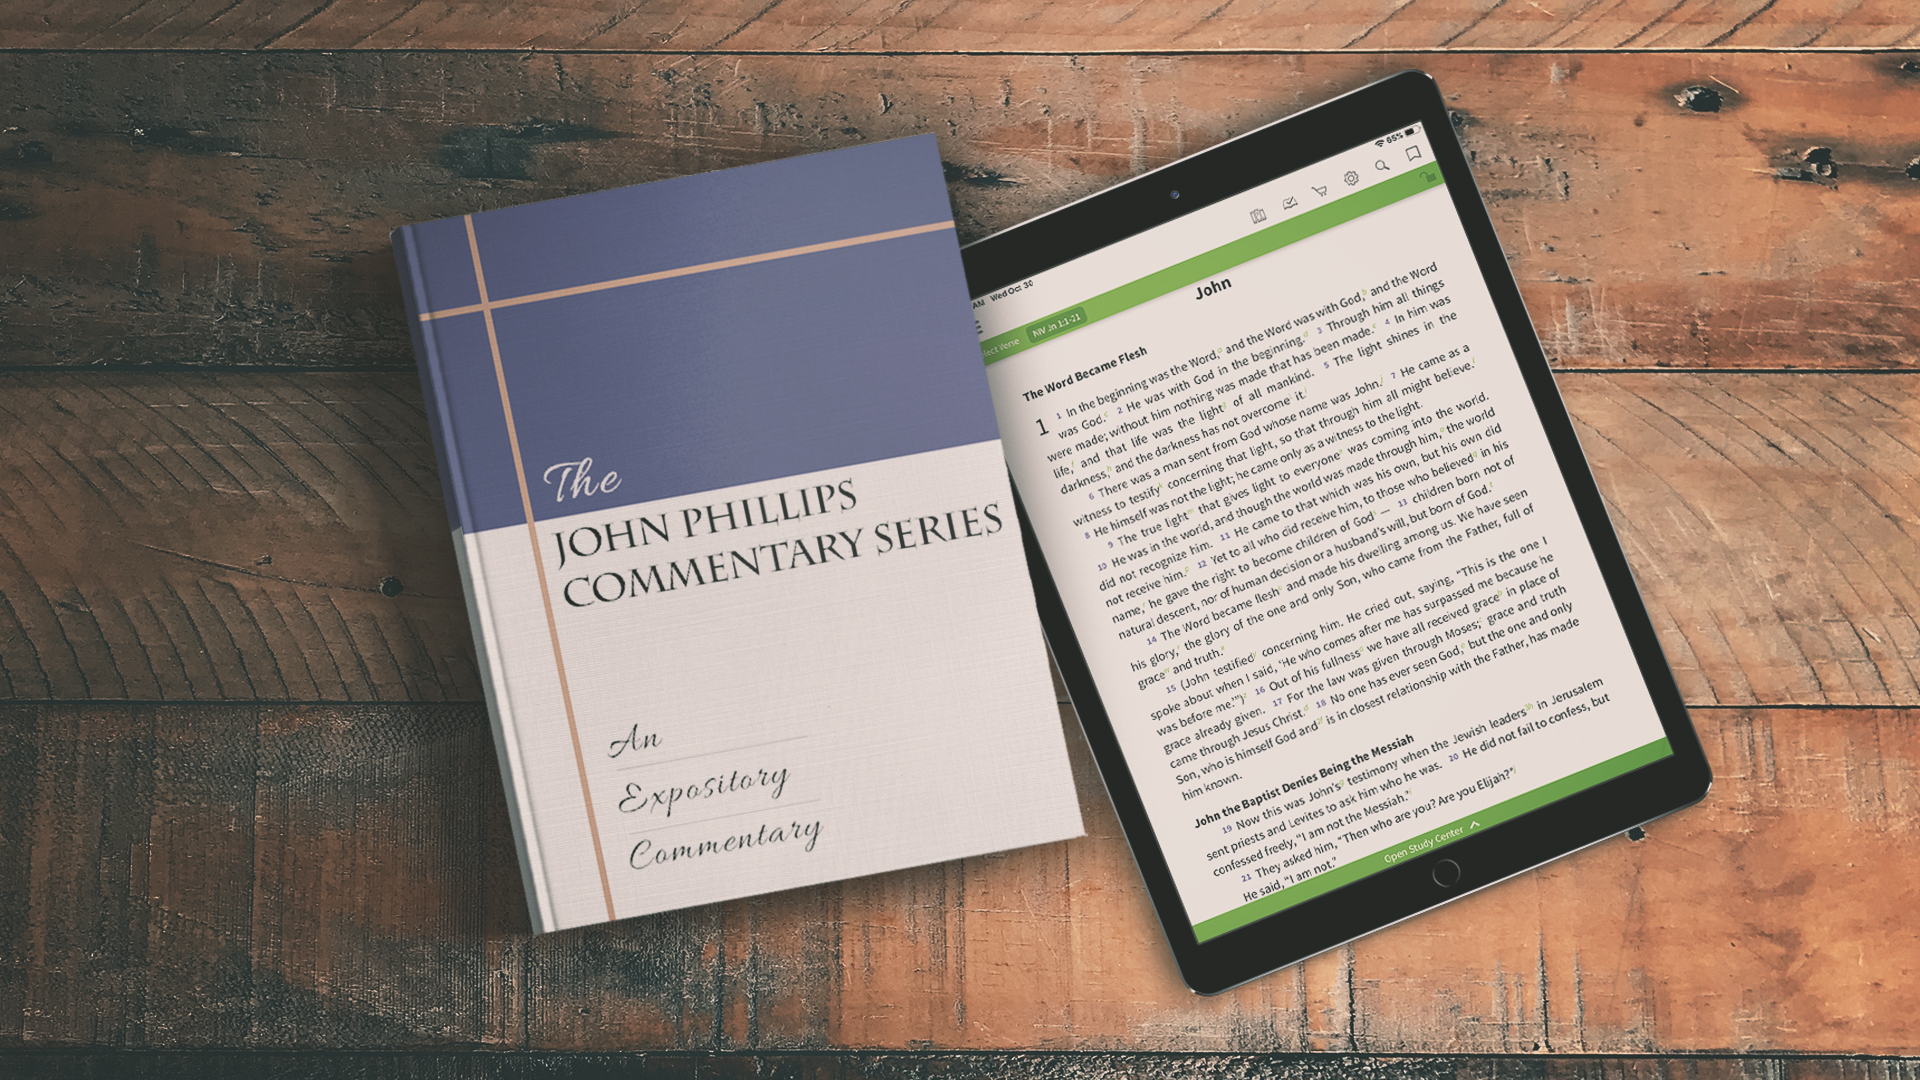 John Phillips Commentary